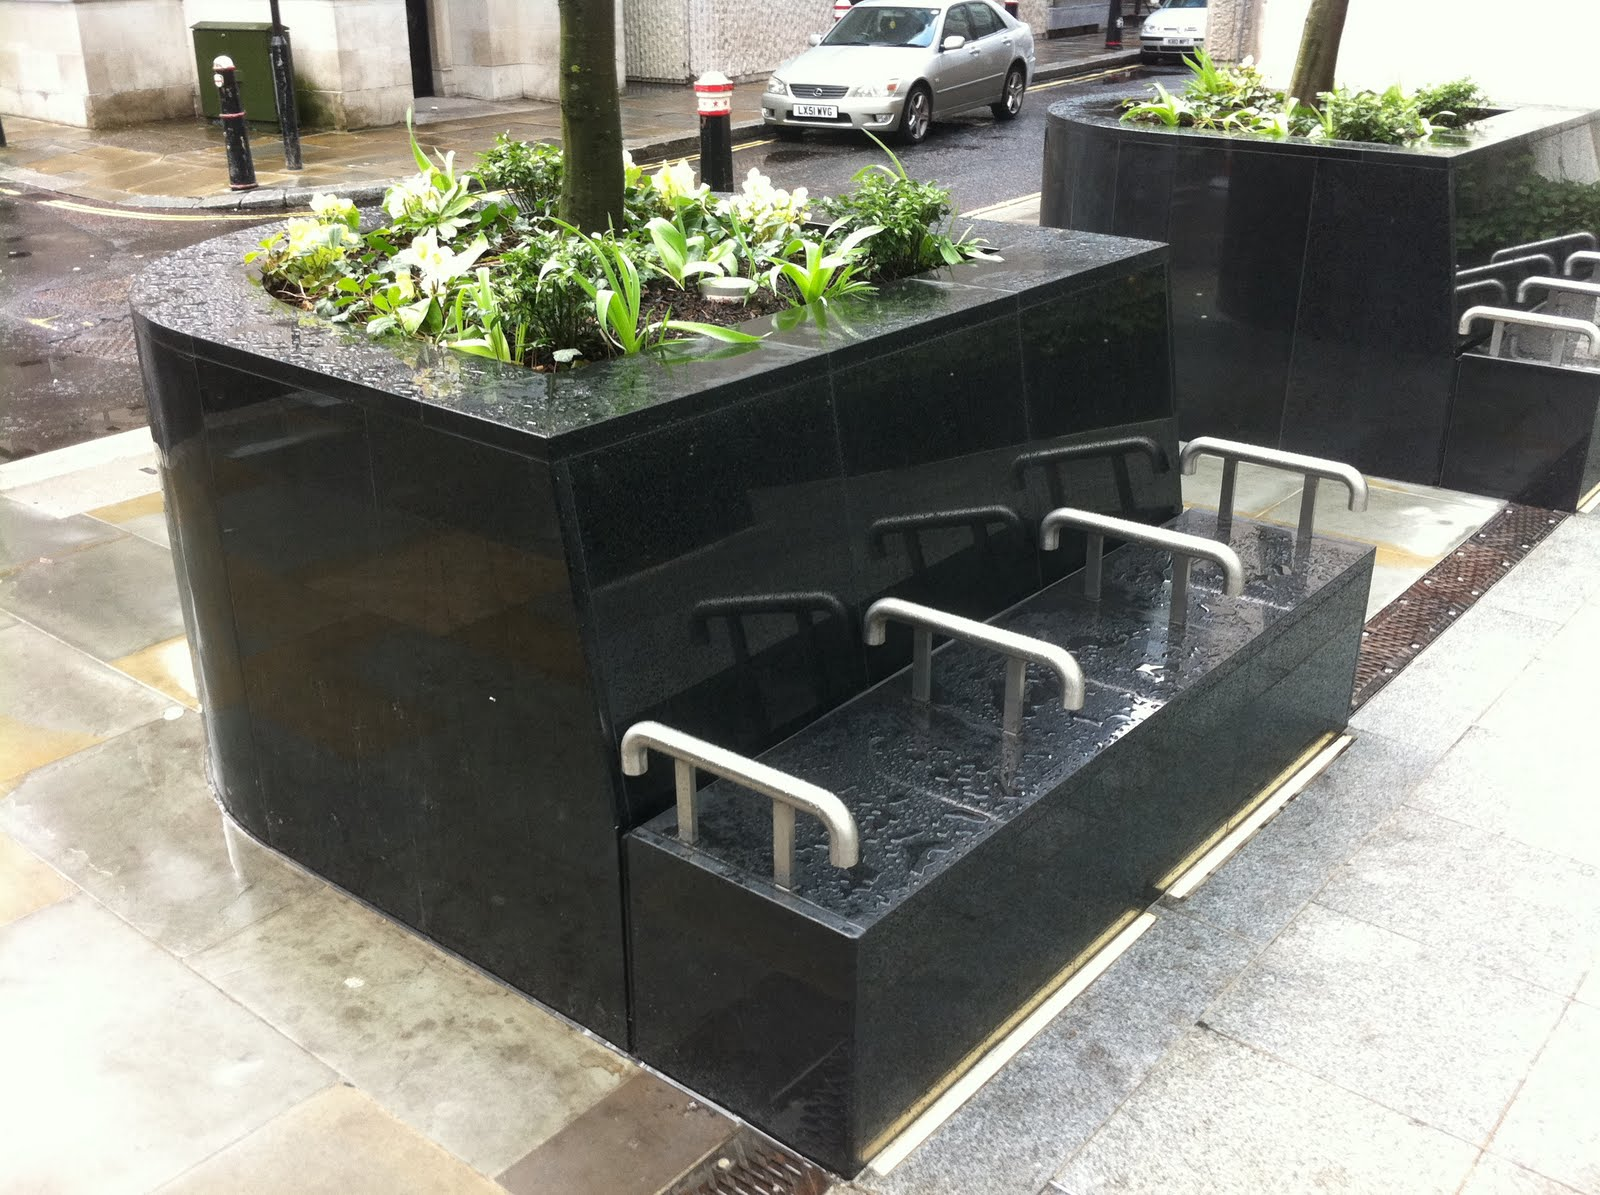 Modern Park Benches Part - 49: Just Off Morgate An Architectural Inspired Pocket Park With Some Modern  Marble Benches For City Folk To Rest And Eat Lunch.